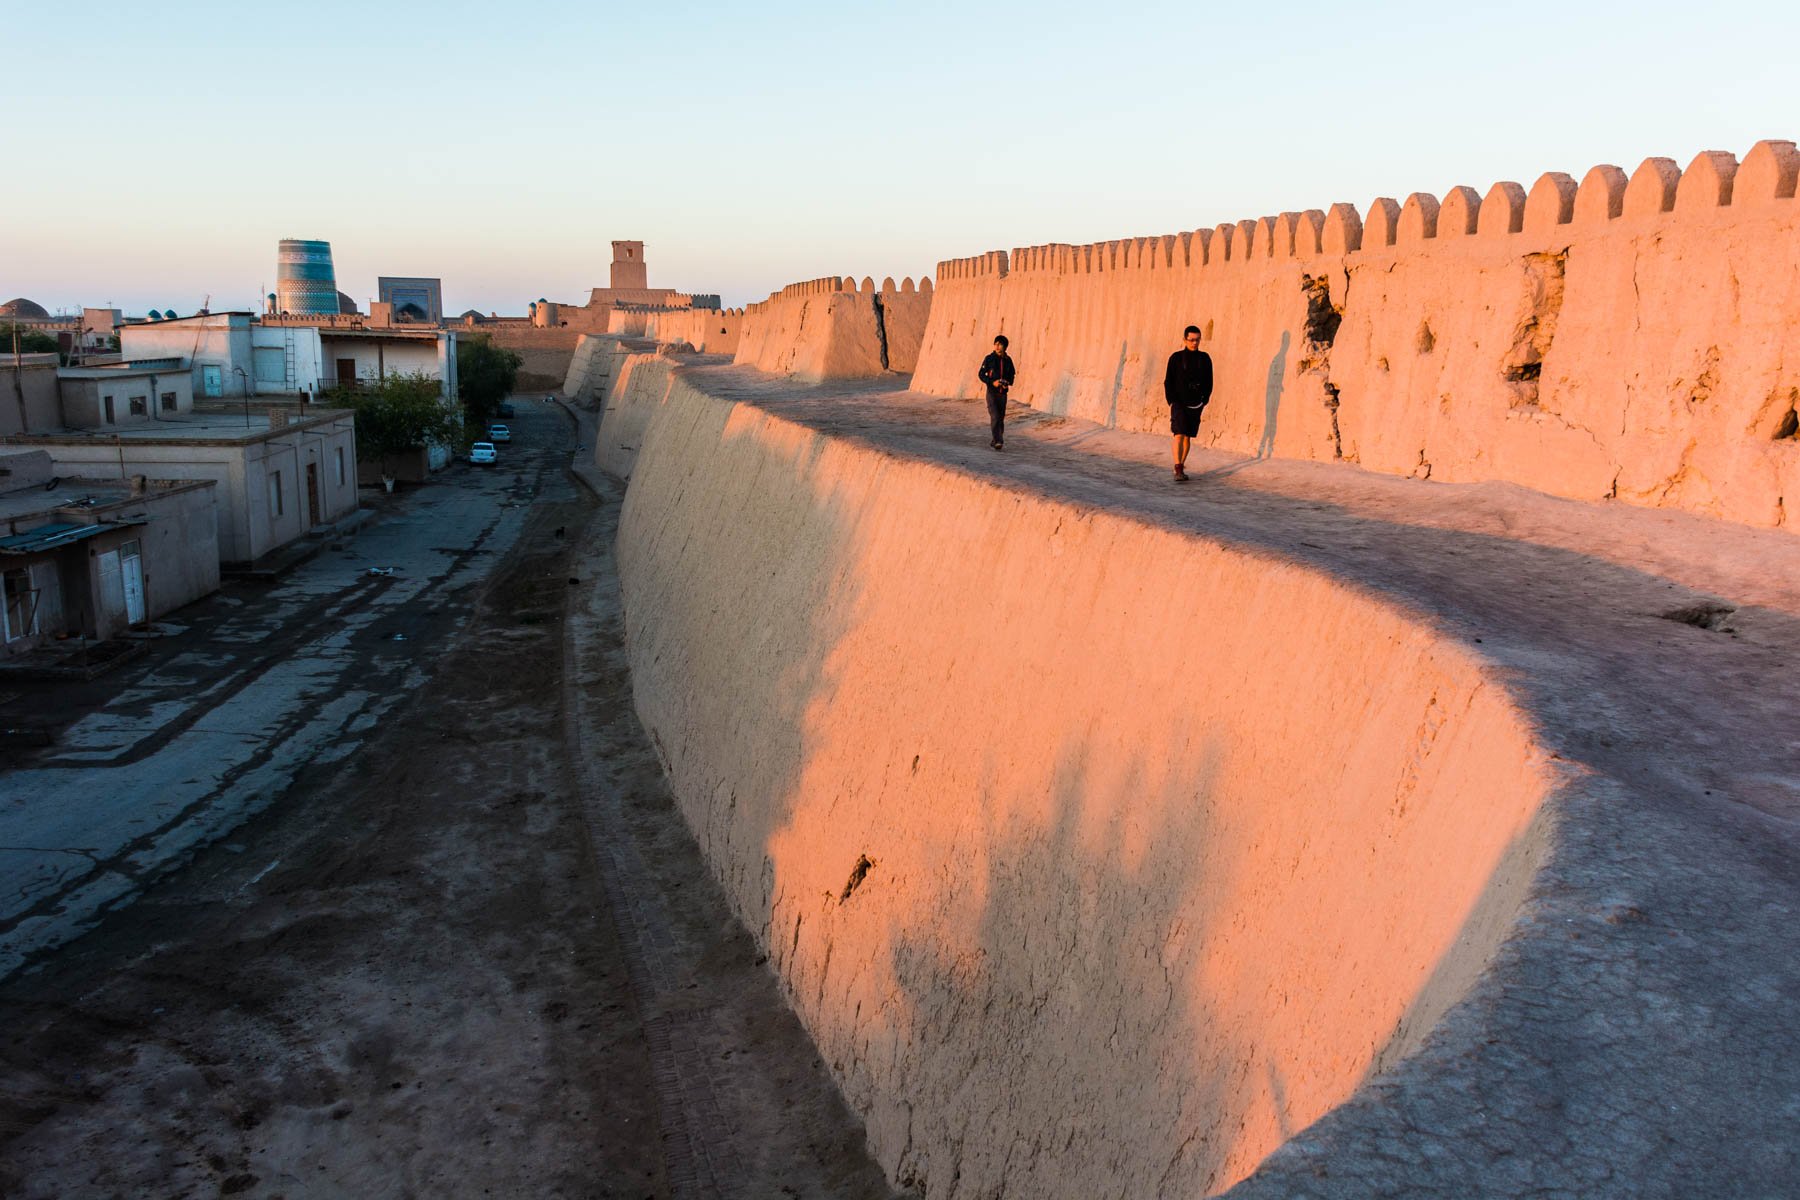 Two week Uzbekistan itinerary - Sunrise on the walls of Khiva's old city - Lost With Purpose